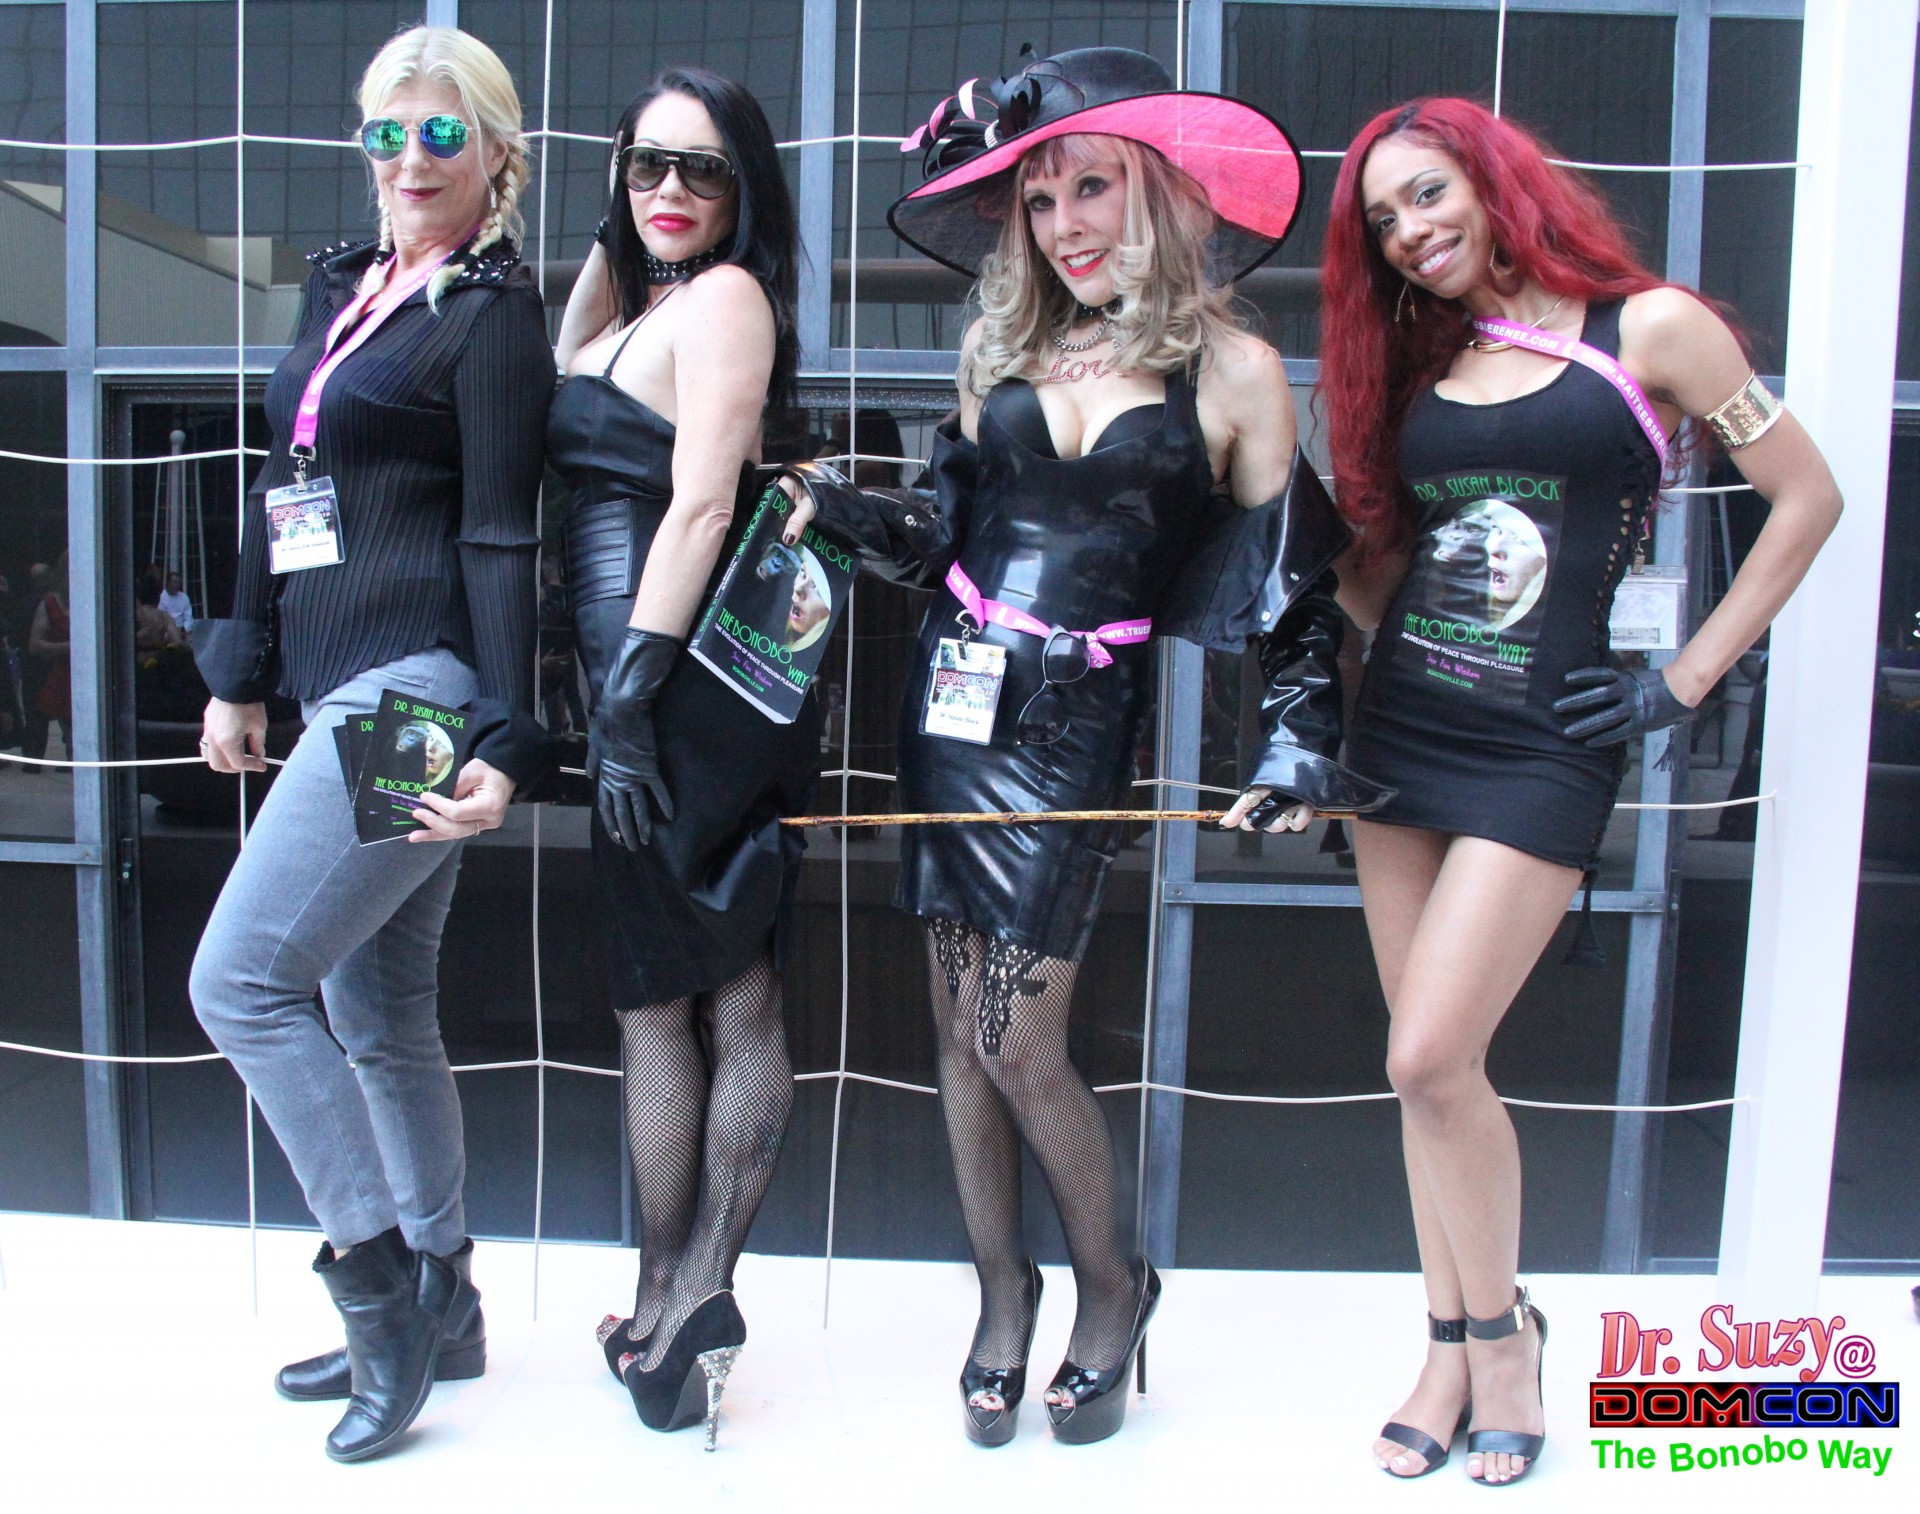 Book-Spanking Mistresses of Bonoboville at DomCon 2016. Photo: Unscene Abe